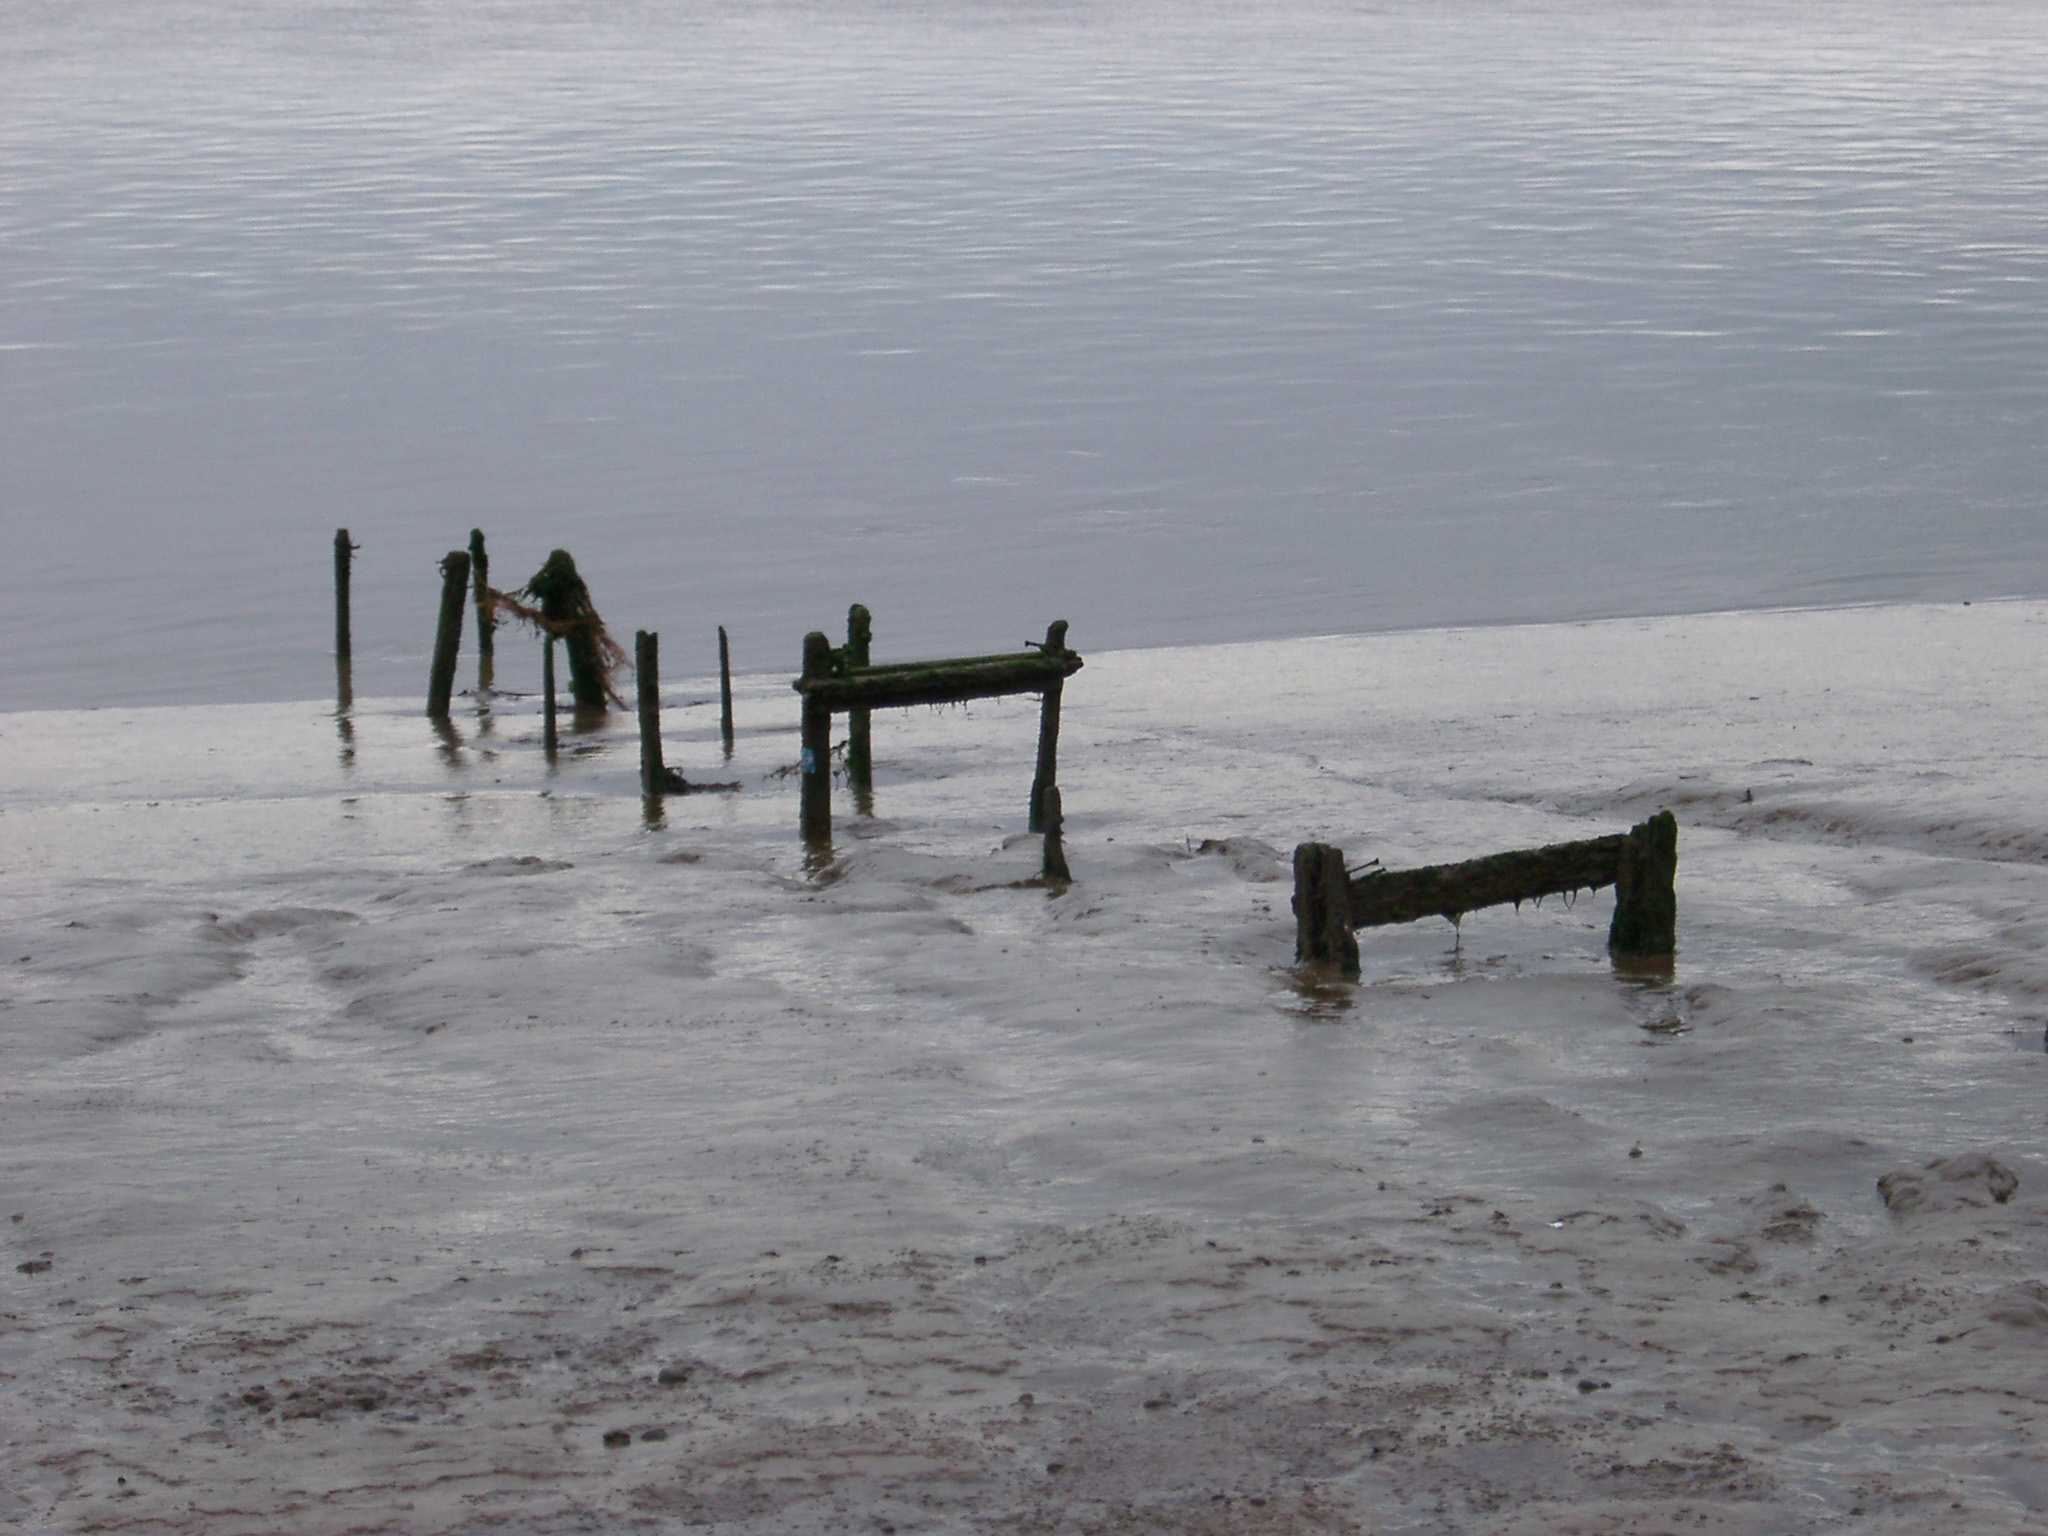 Atmospheric background view of an estuary beach with the old remnants of wooden posts sticking up out of the sand at the waters edge